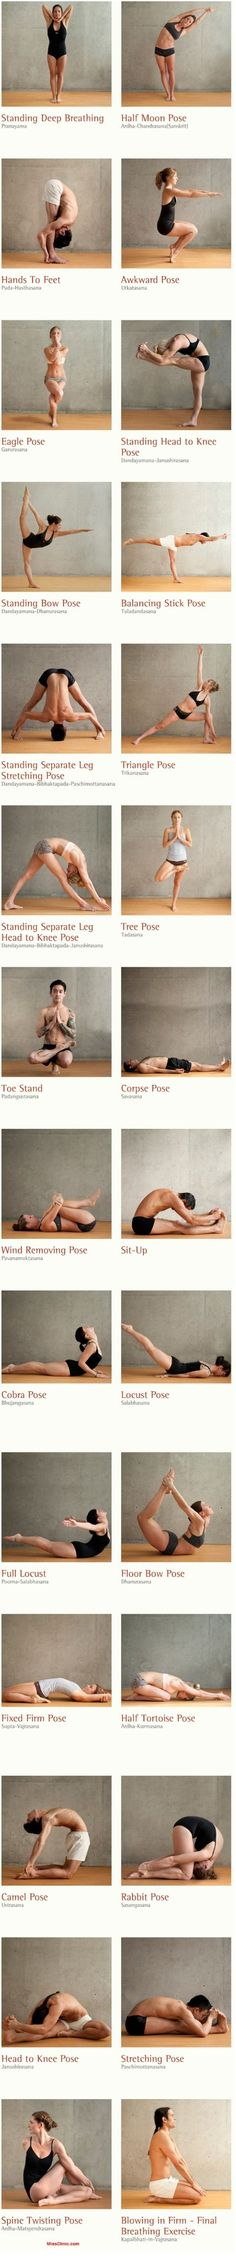 26 Yoga Postures...now I just have to get flexible enough to do them!